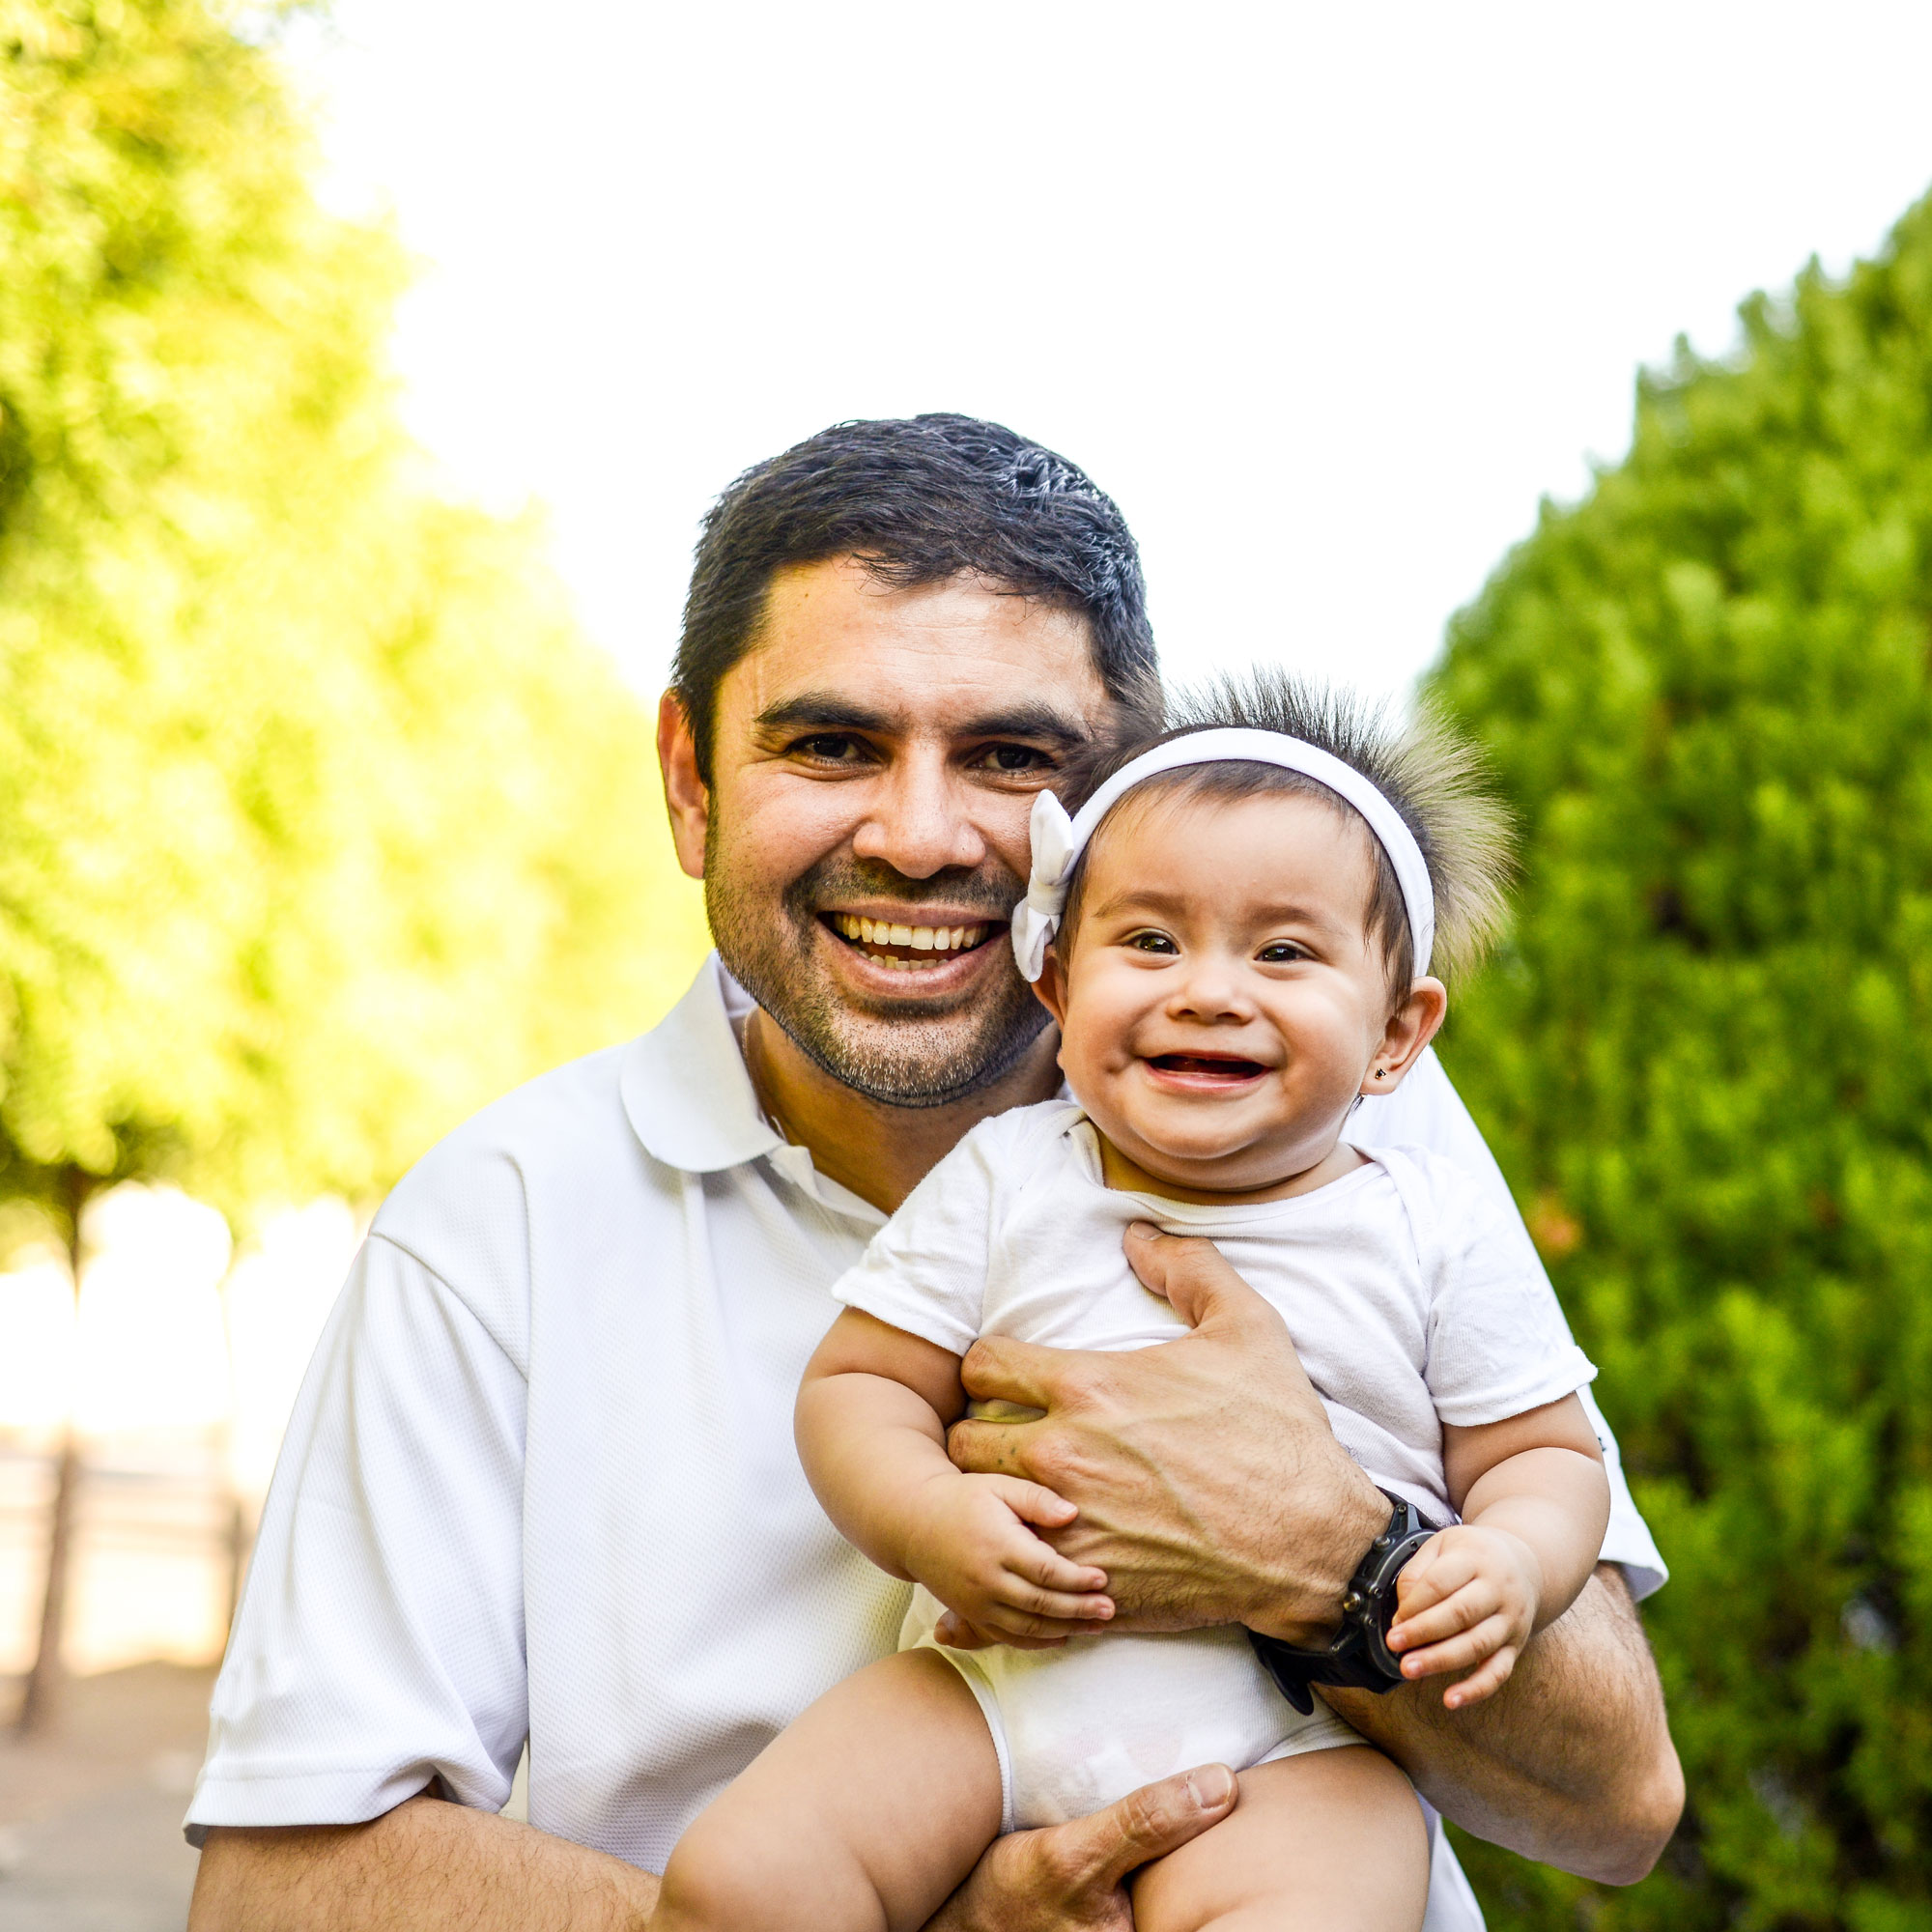 Smiling dad and baby